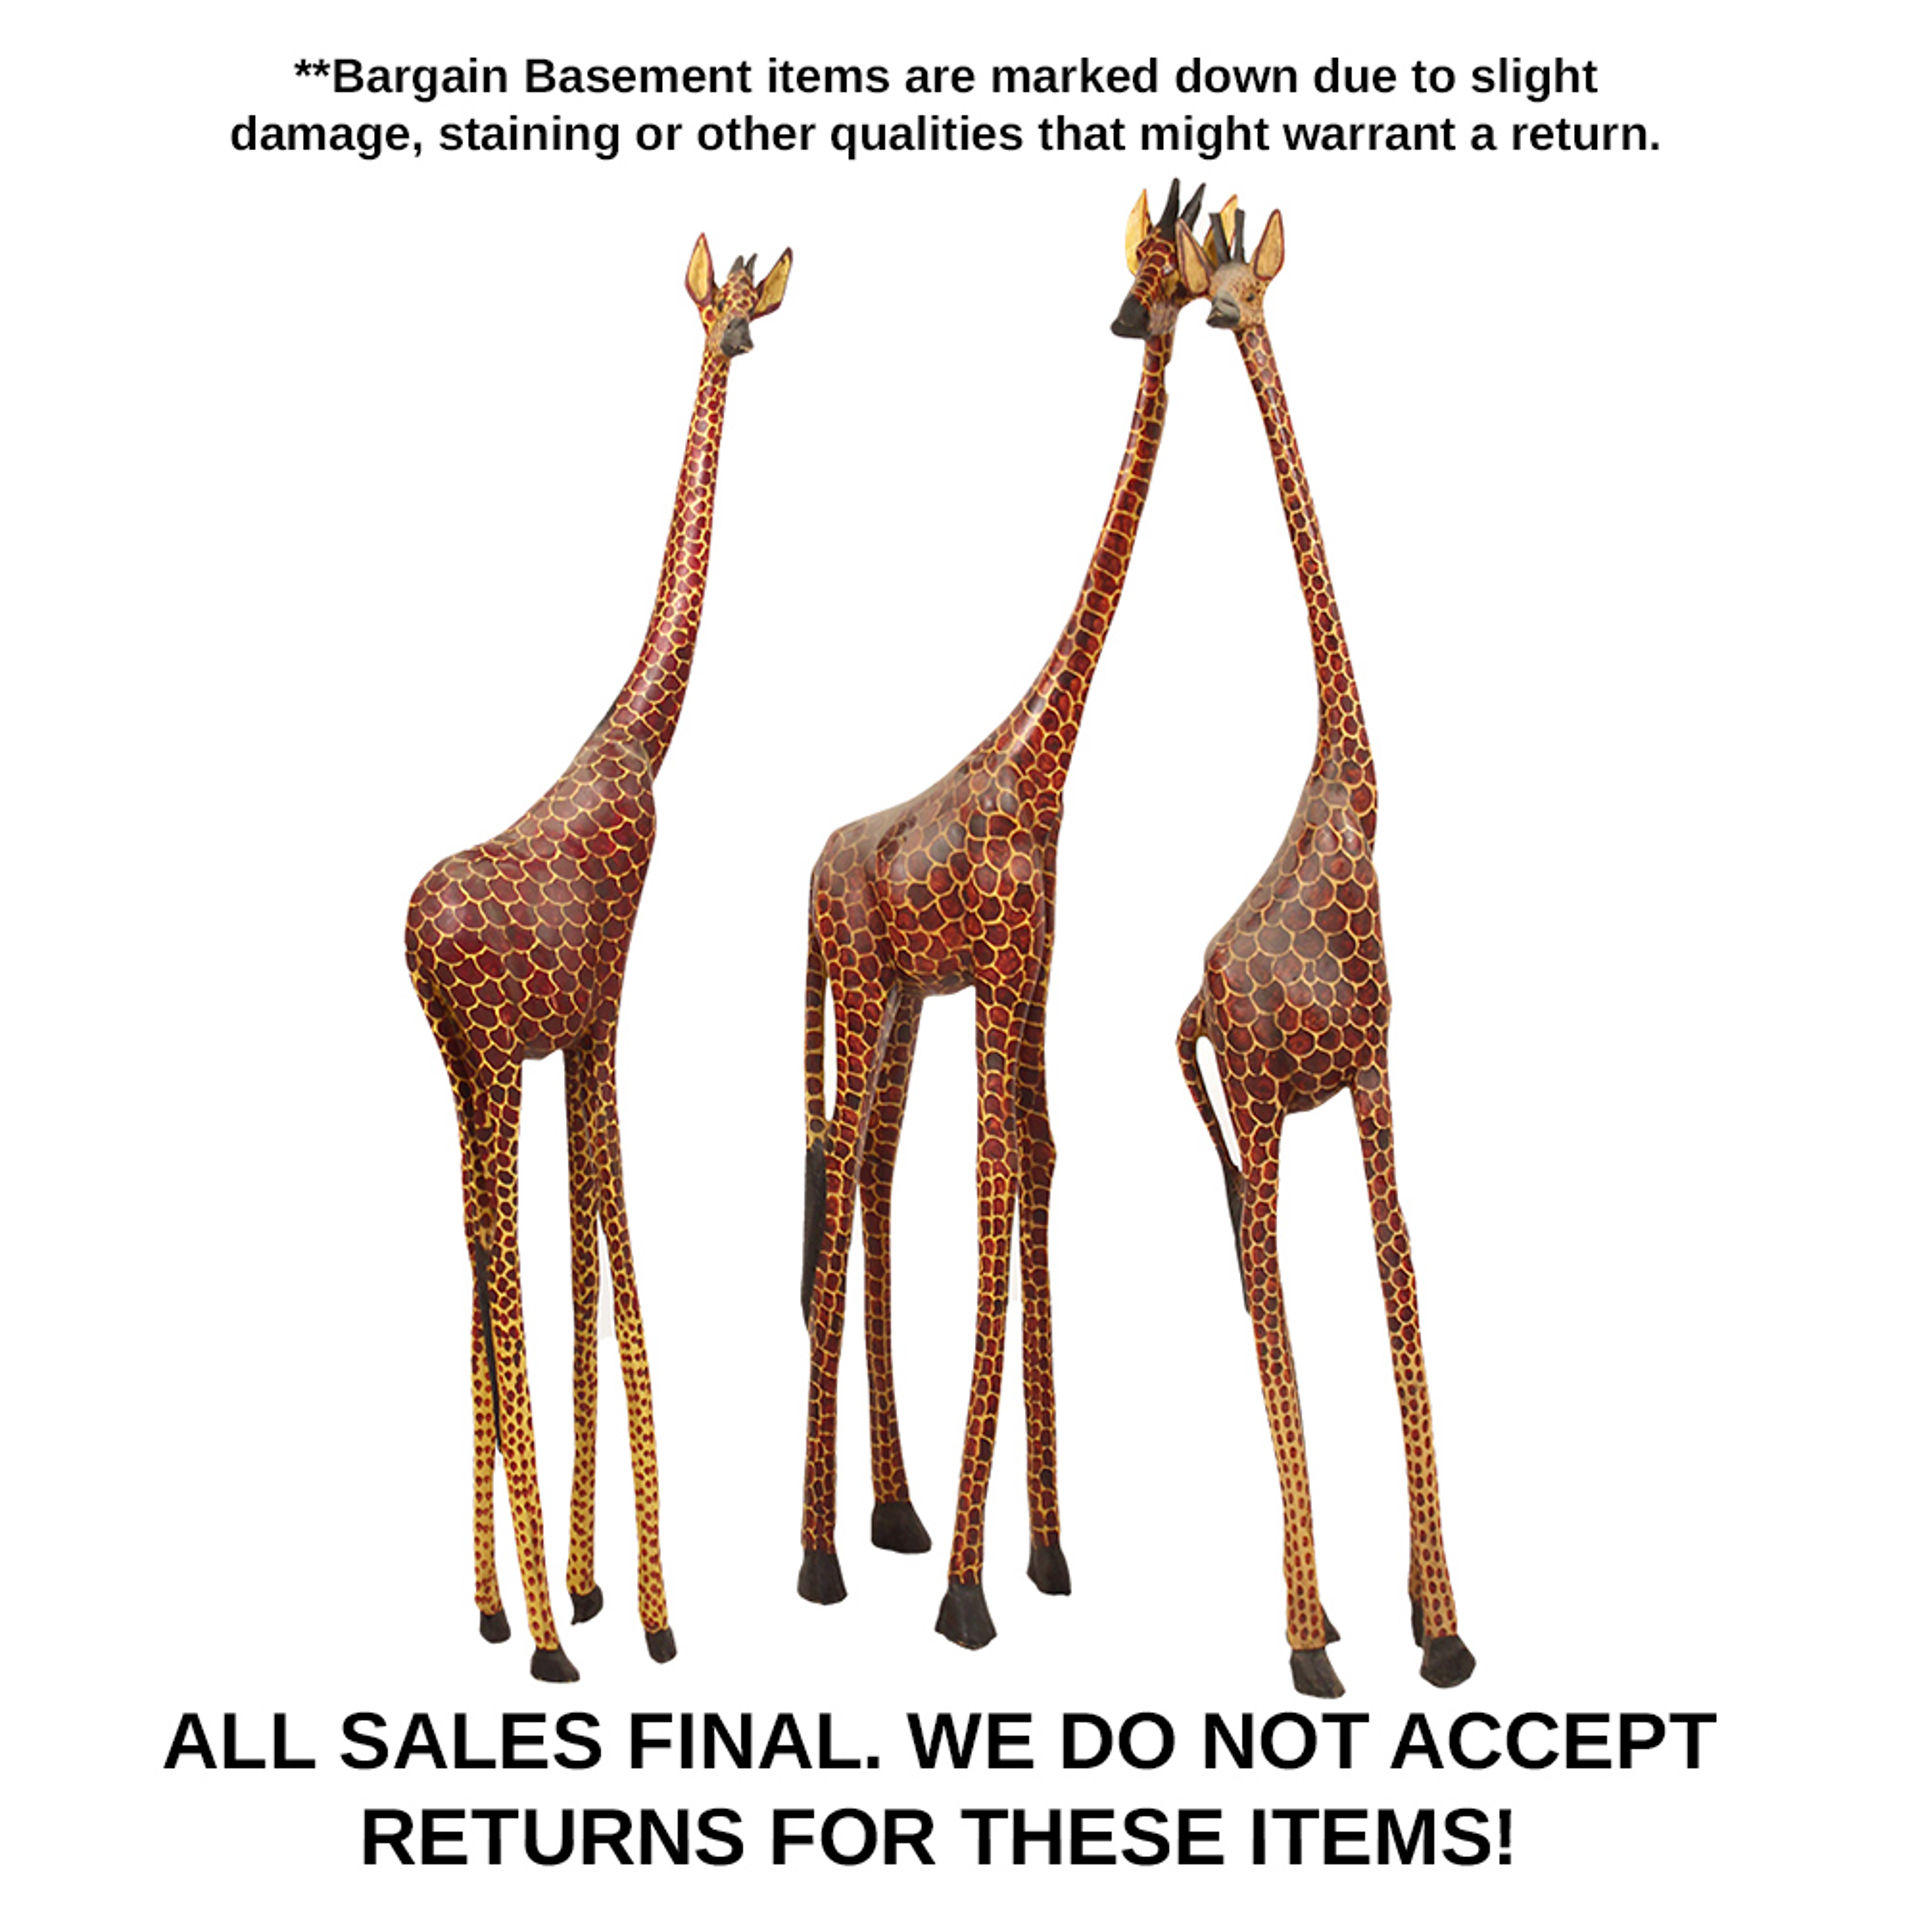 Picture of Damaged 3 Foot Giraffes